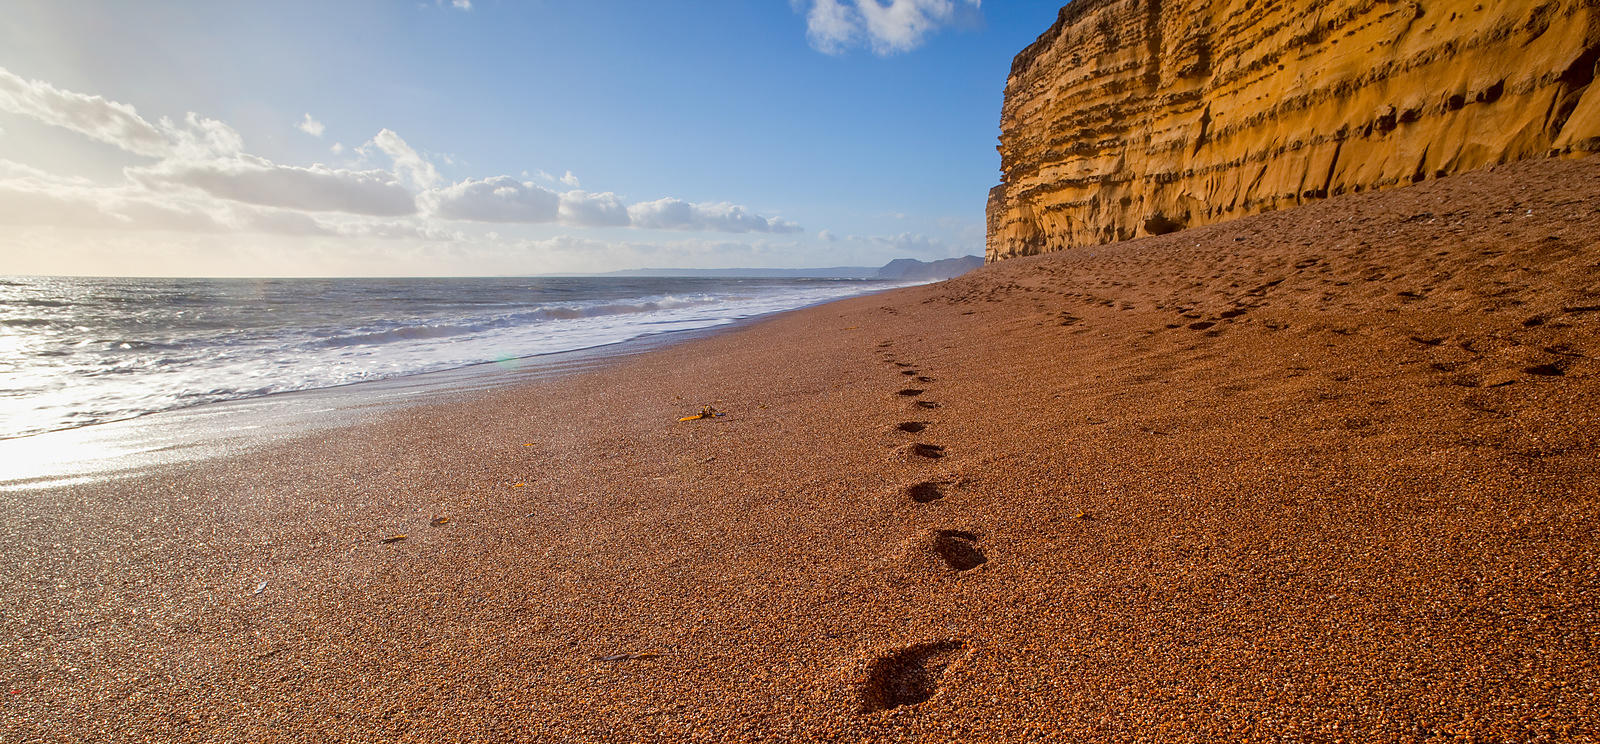 Footprints in the sand at Burton Bradstock